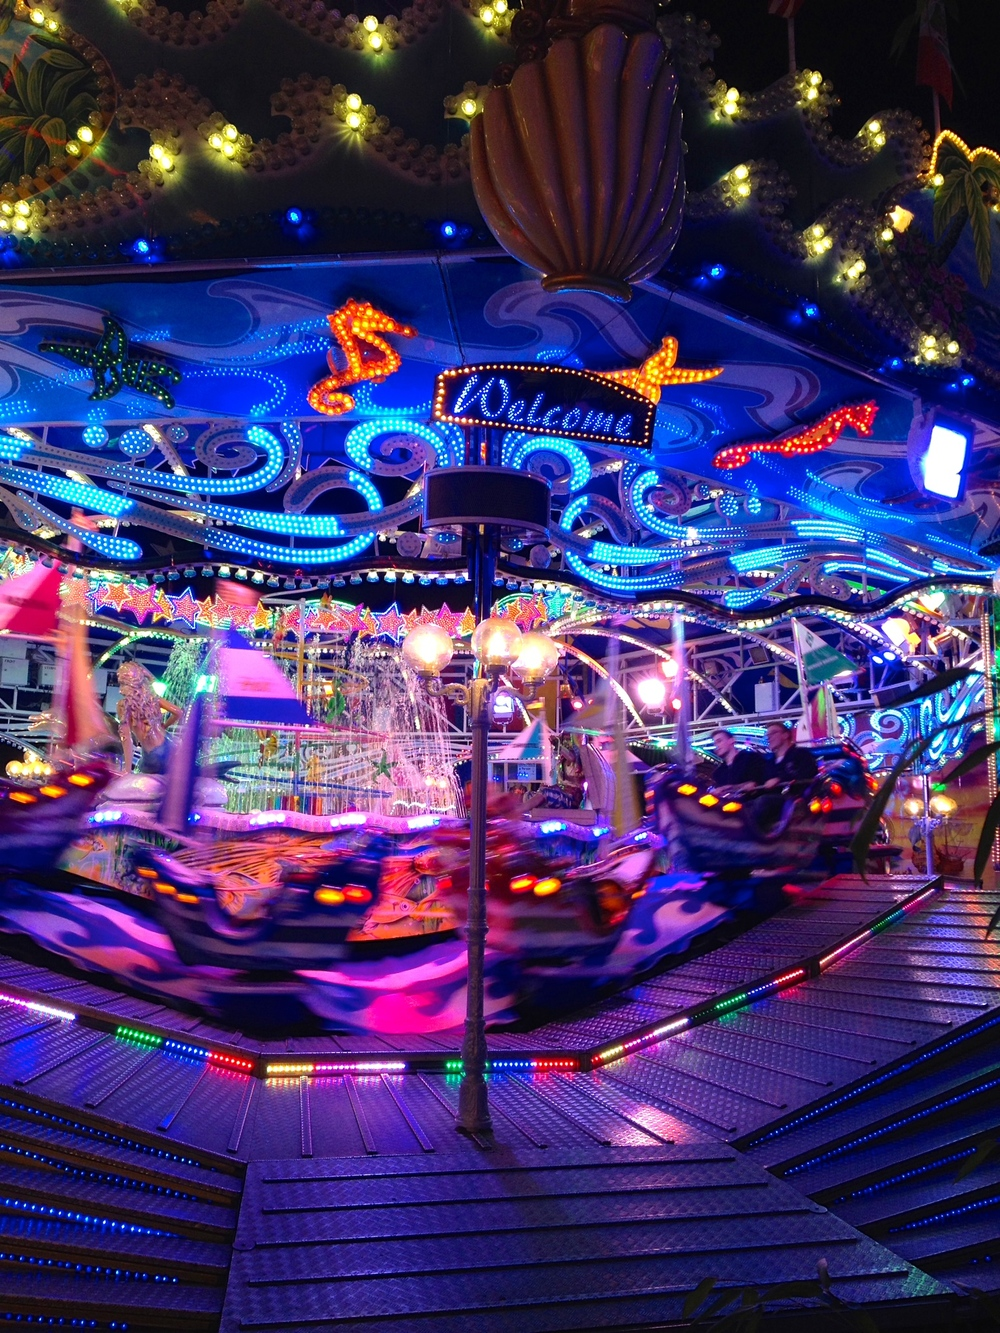 An ocean-themed whirling ride